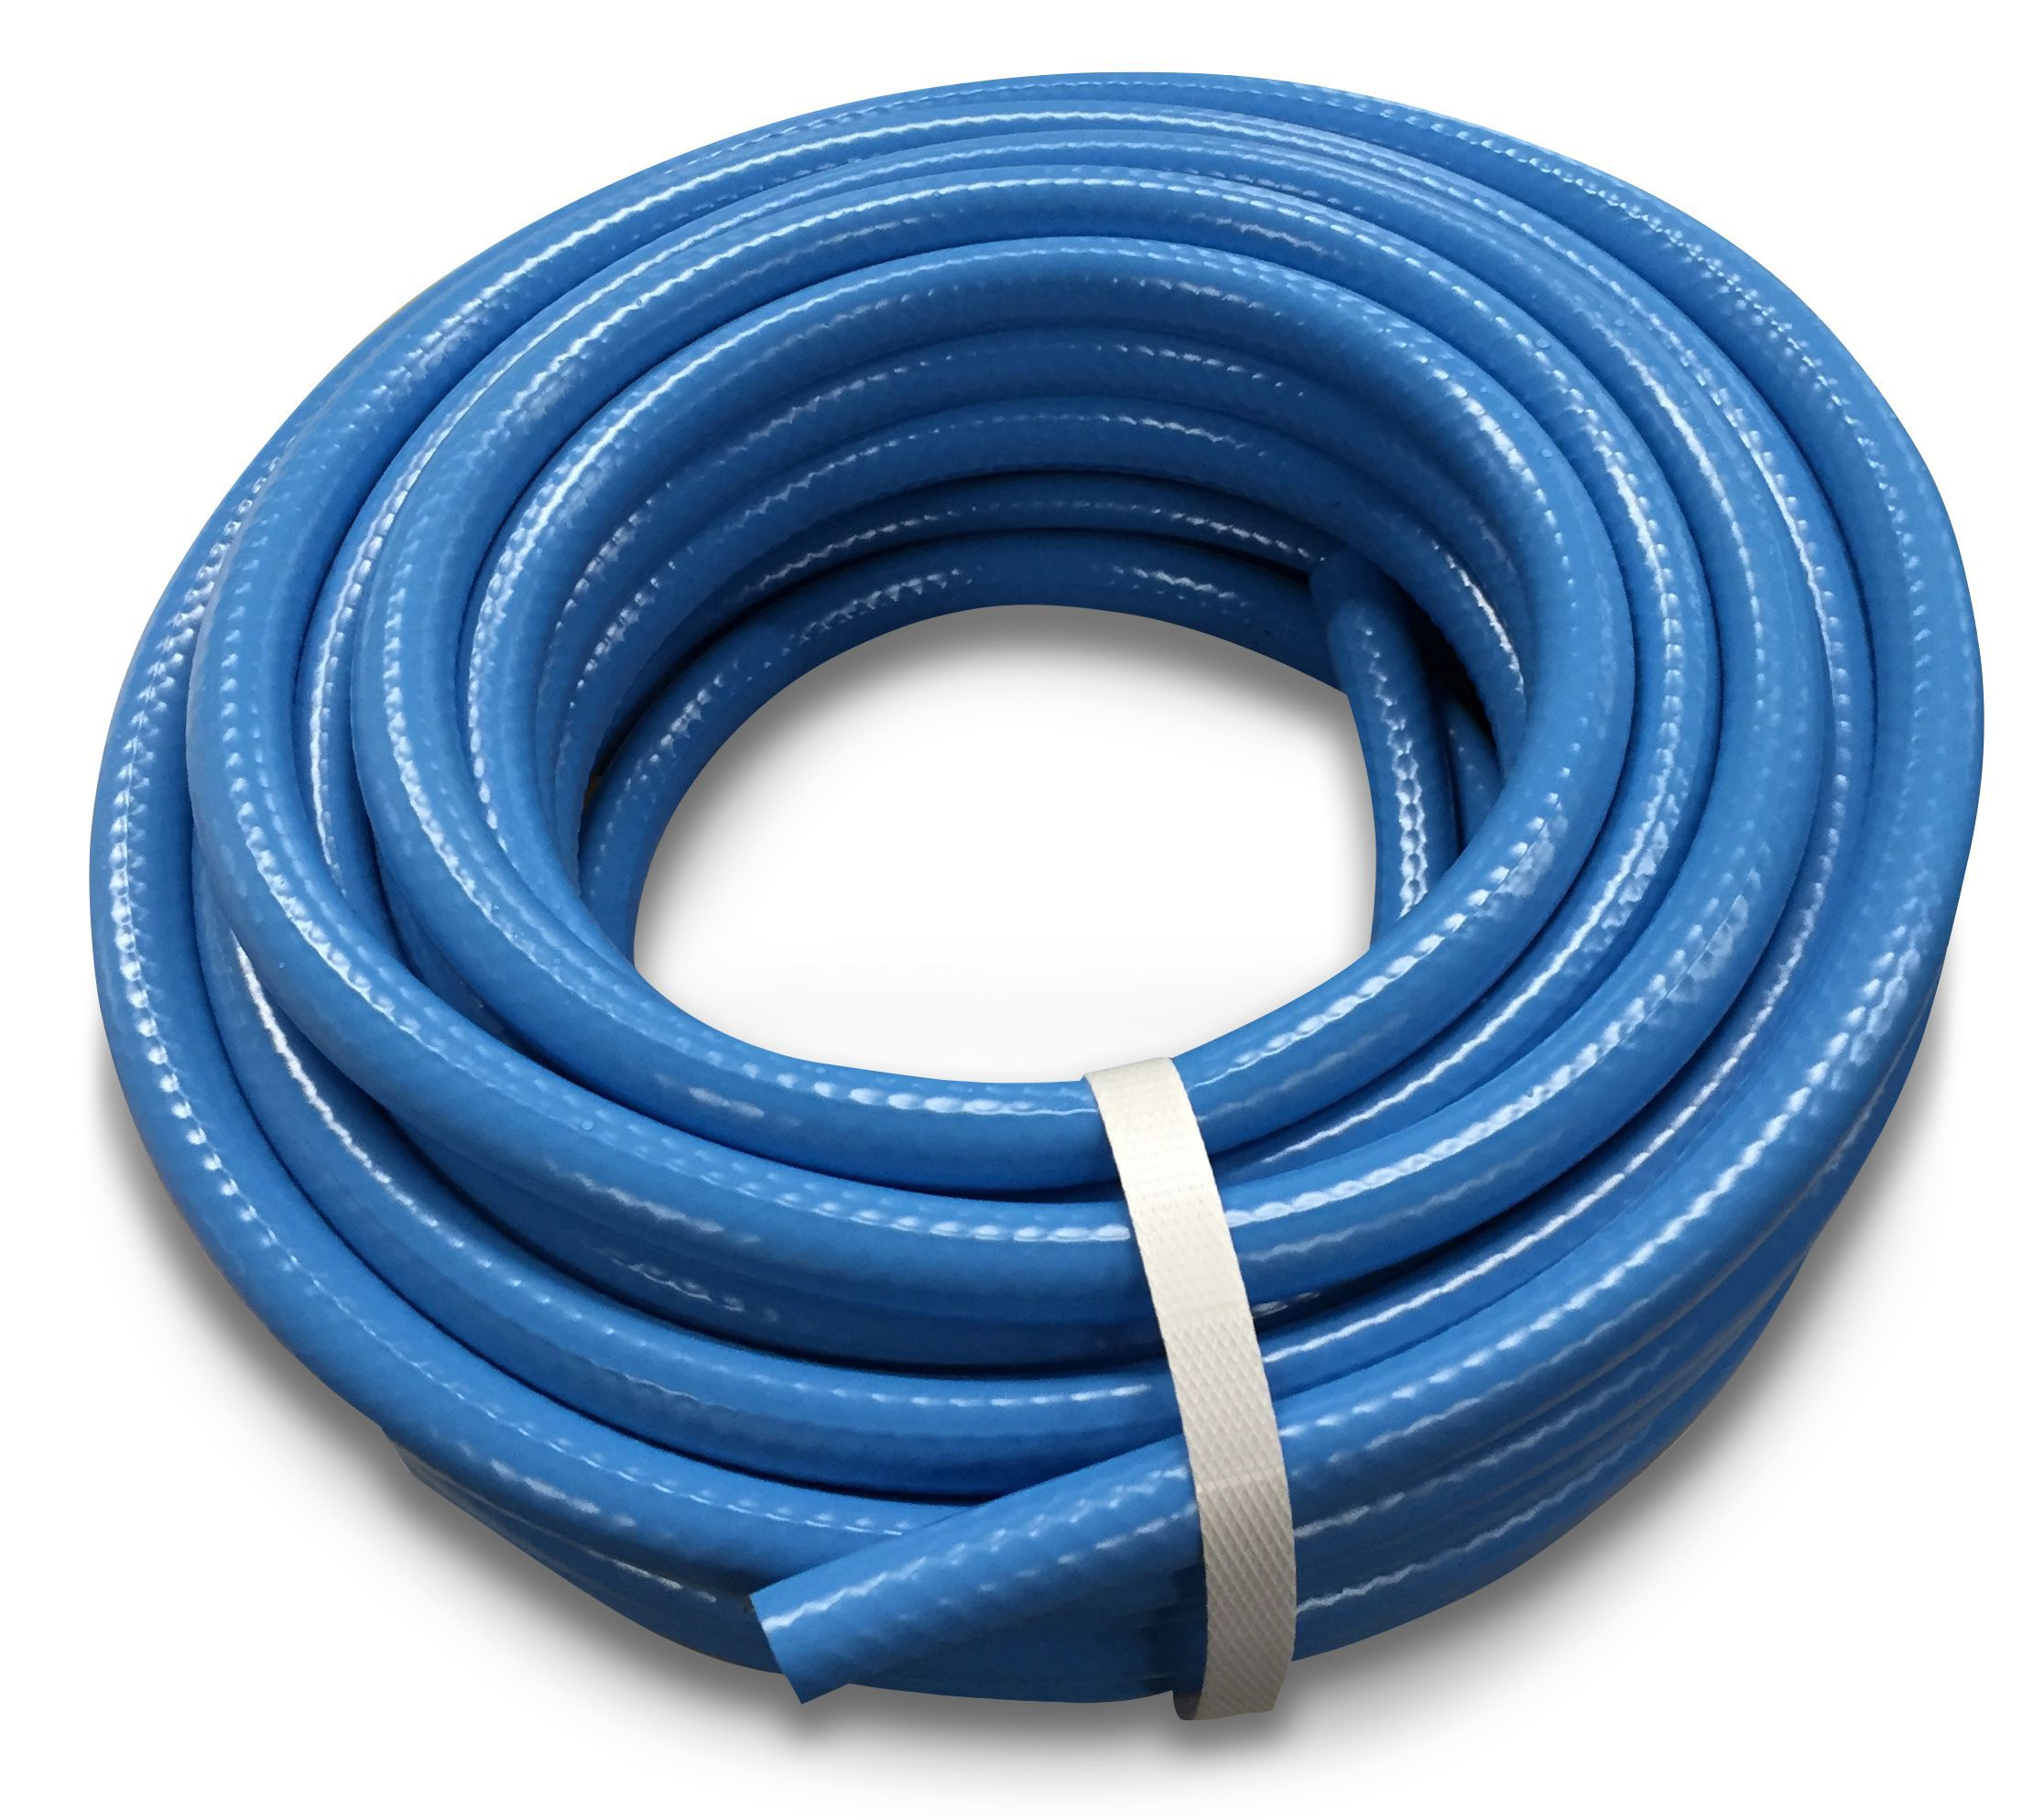 B&Q Braided Hose (L)15 m | Departments | DIY at B&Q